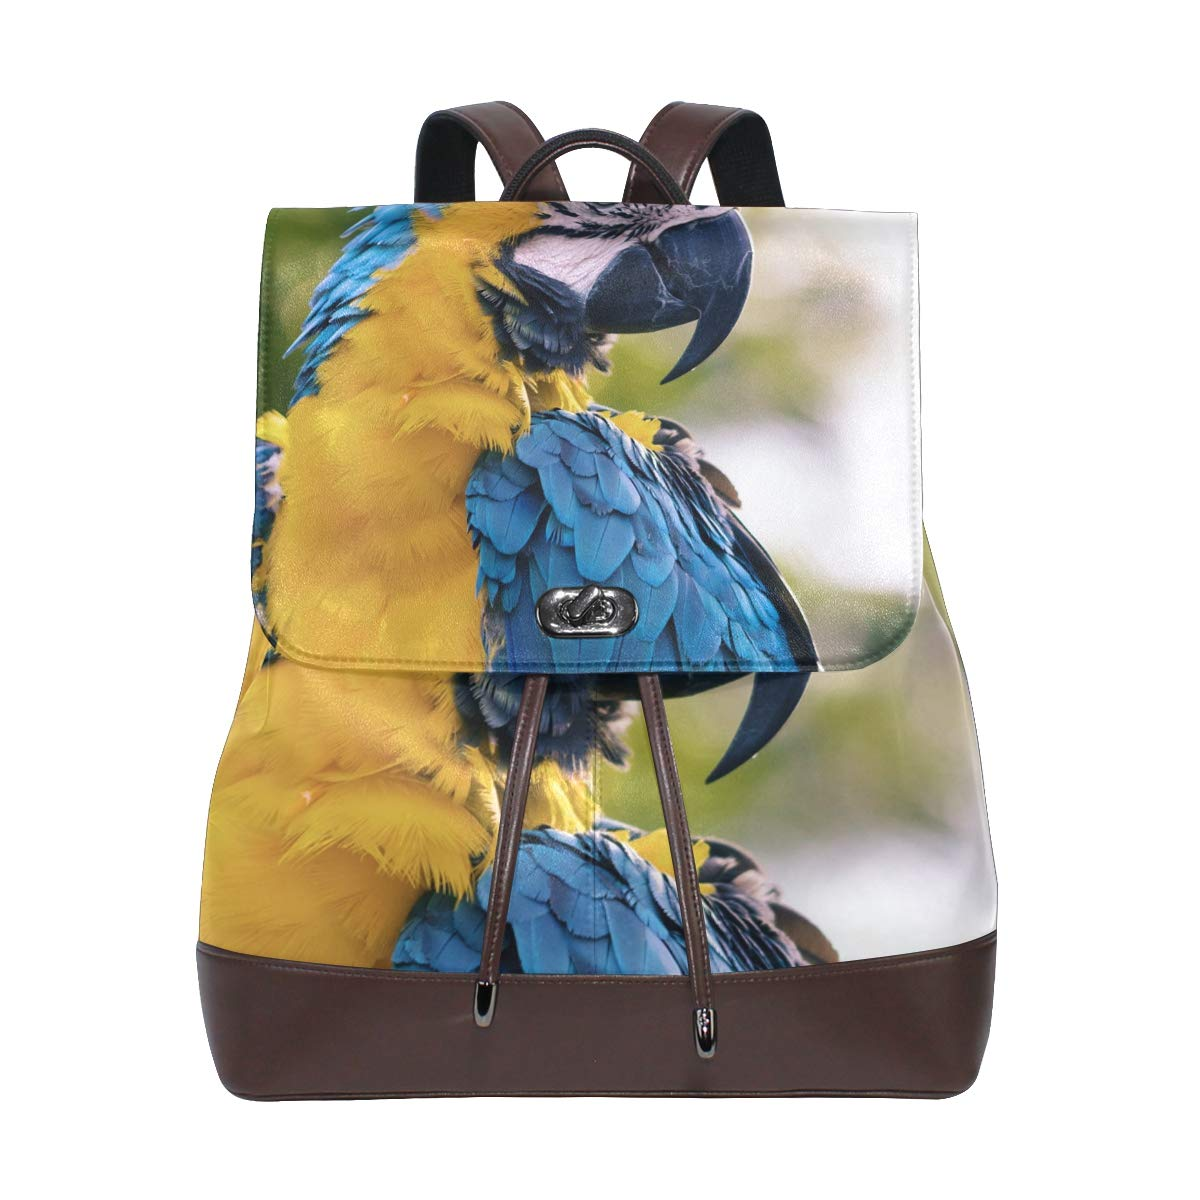 PU Leather Shoulder Bag,Blue Yellow Leather Bird Fashion Backpack,Portable Travel School Rucksack,Satchel with Top Handle